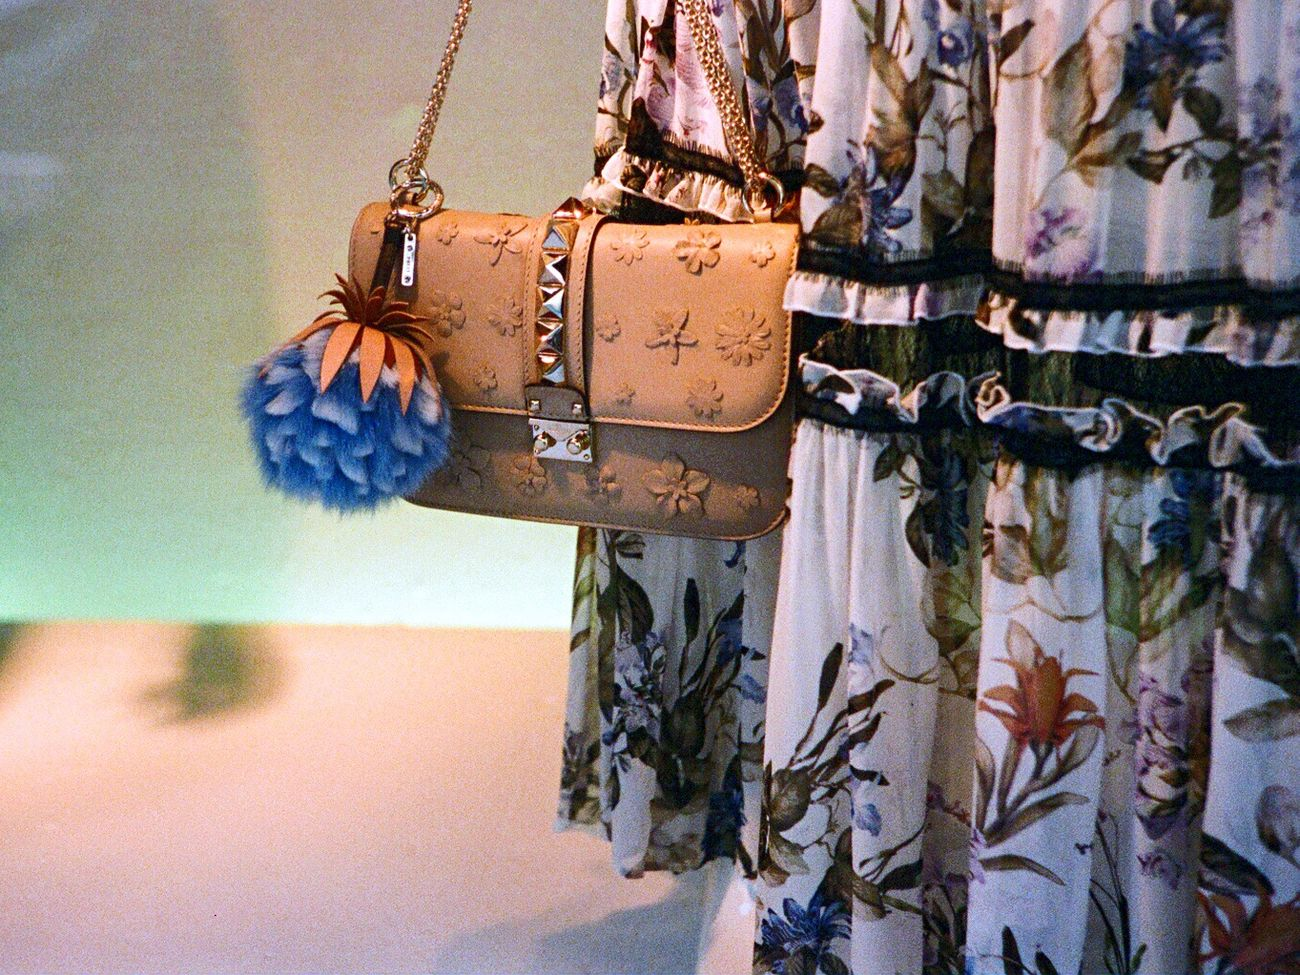 Bag Film Leica M6 Store Window Koduckgirl F2/400 Saks Fifth Ave Mannequin Fashion